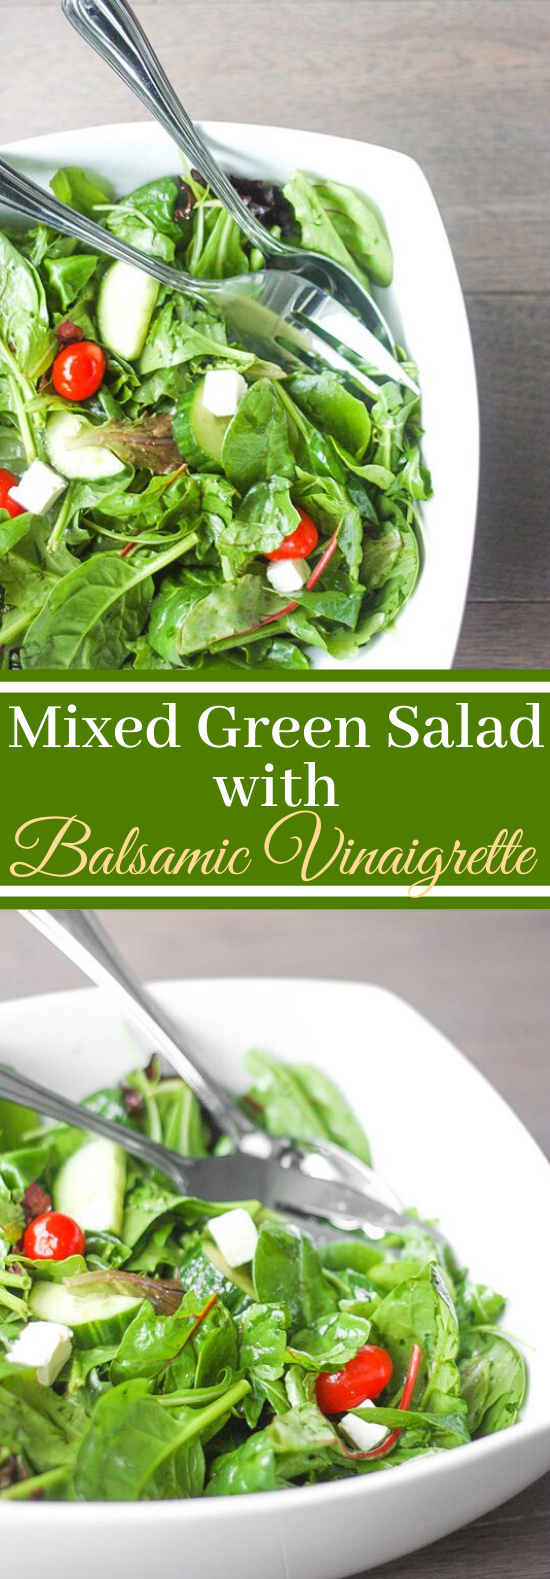 Mixed Greens Salad with Balsamic Vinaigrette #healthy #salad #lunch #glutenfree #diet